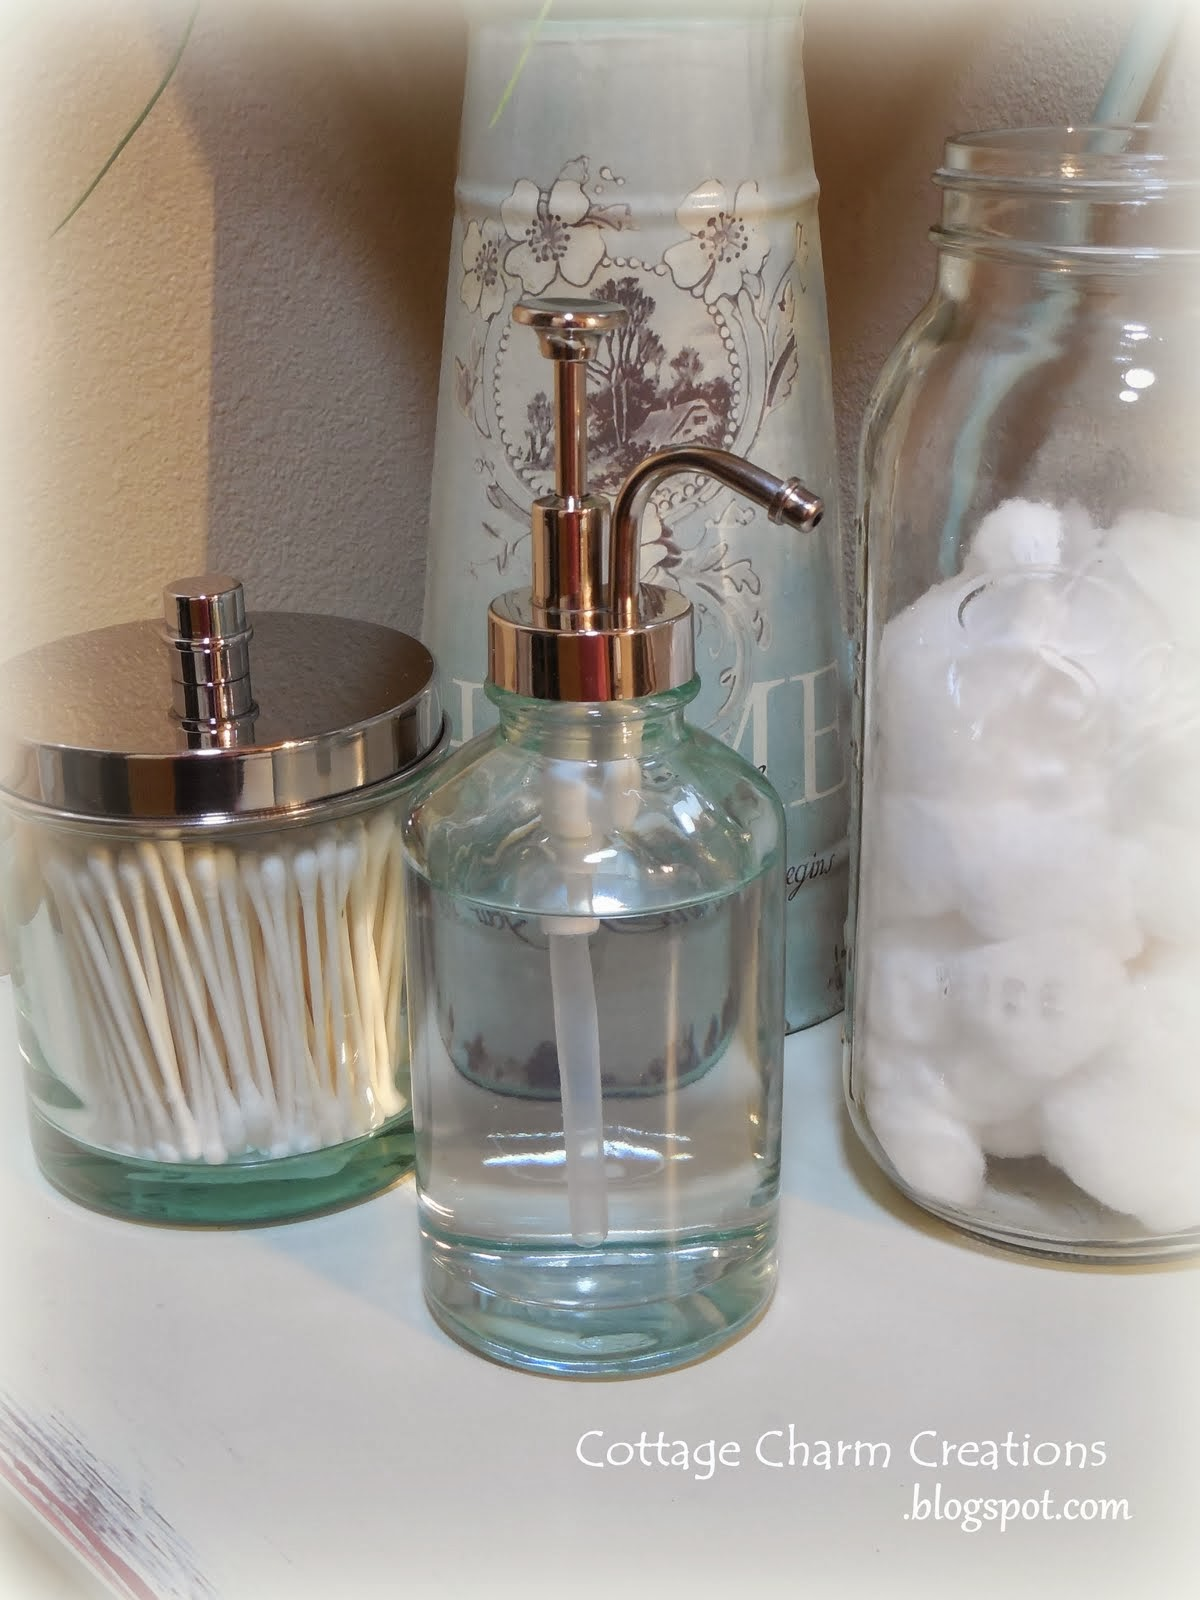 Vintage Bathroom Soap Dispenser Cottage Charm Creations Vintage Soap Dispensers